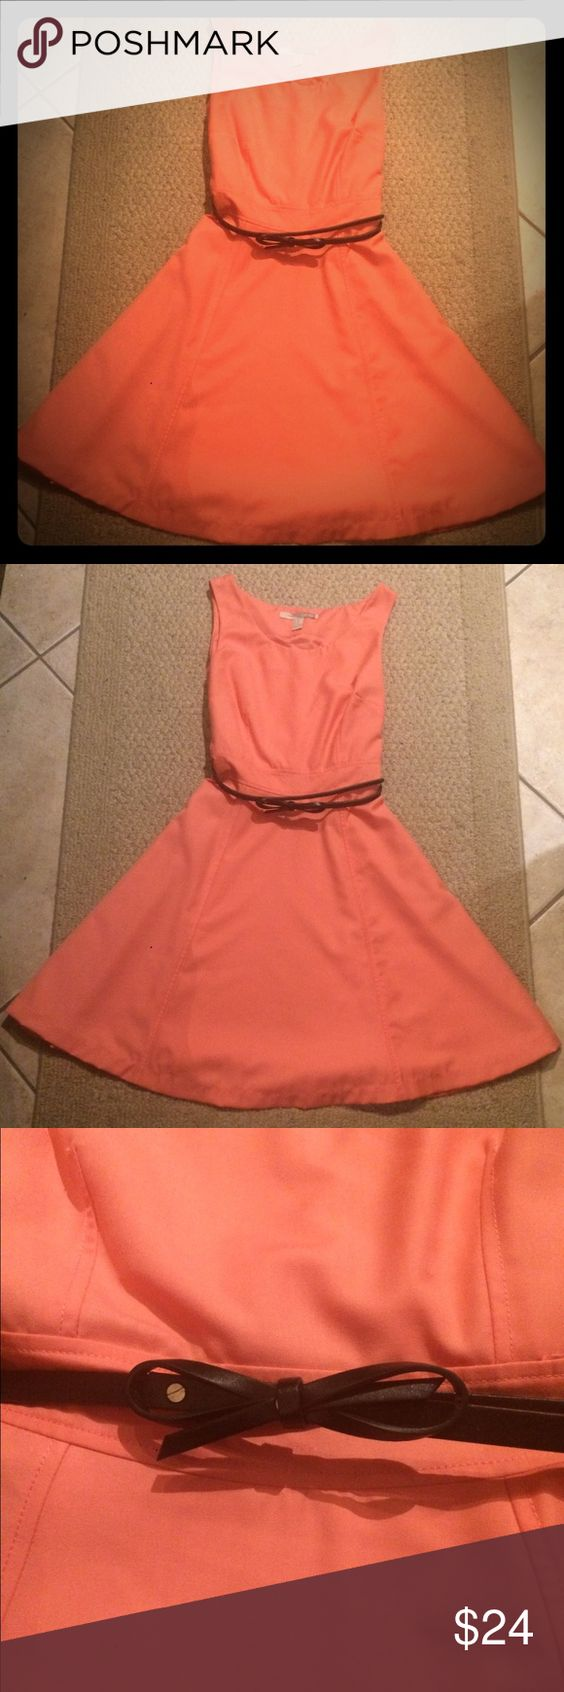 Salmon colored forever 21 flared dress Worn once super cute has old fashion flare   The belt comes with the dress. Accepting reasonable offers Forever 21 Dresses Midi